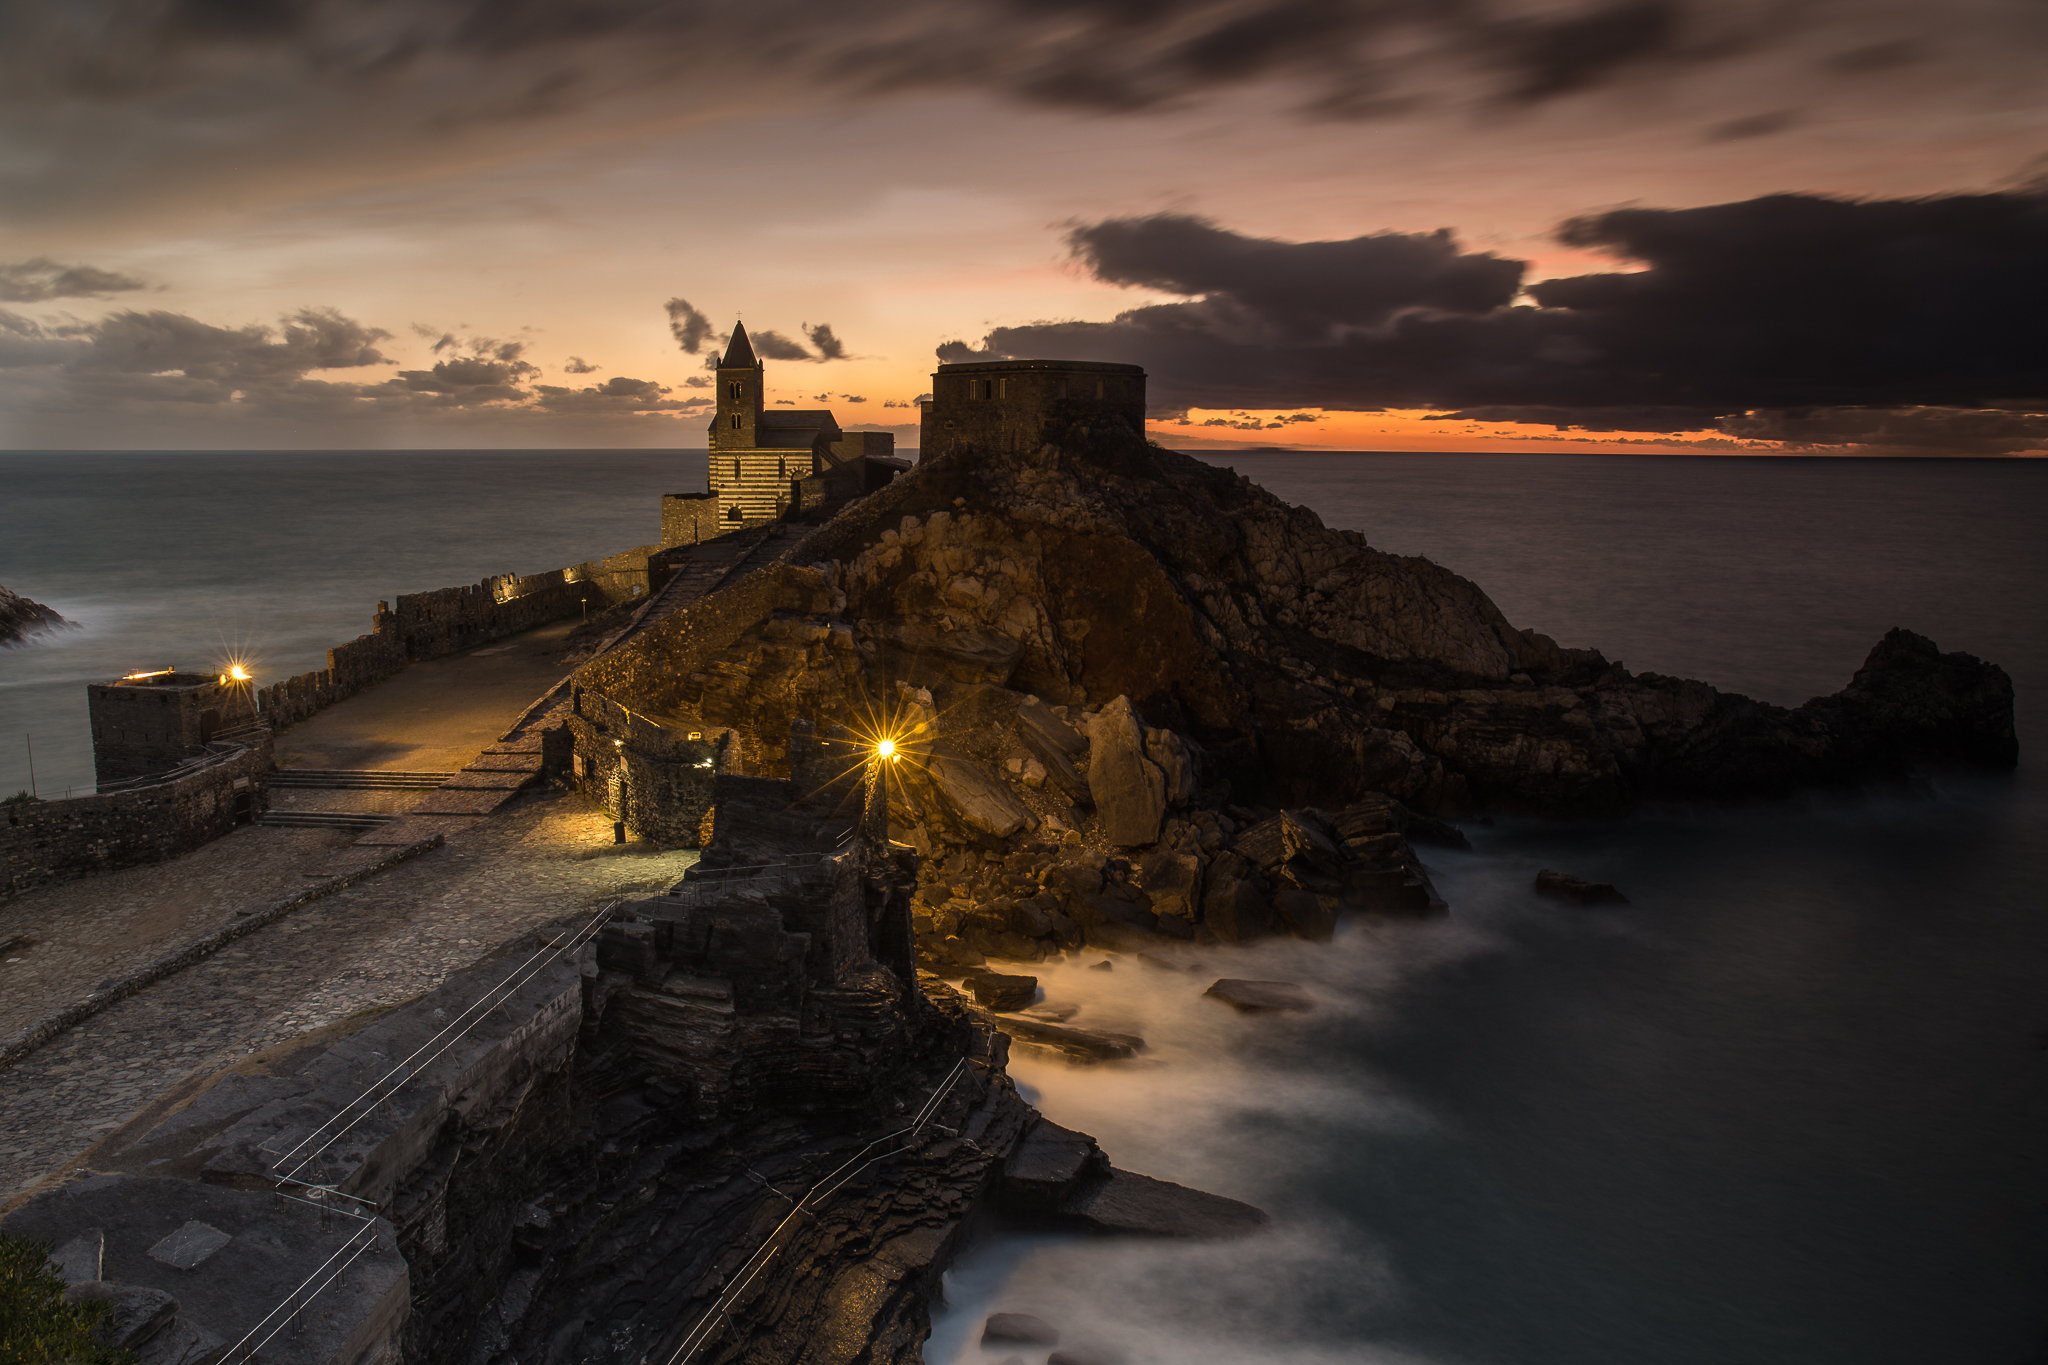 ... Portovenere the pearl of the Gulf of Poets...